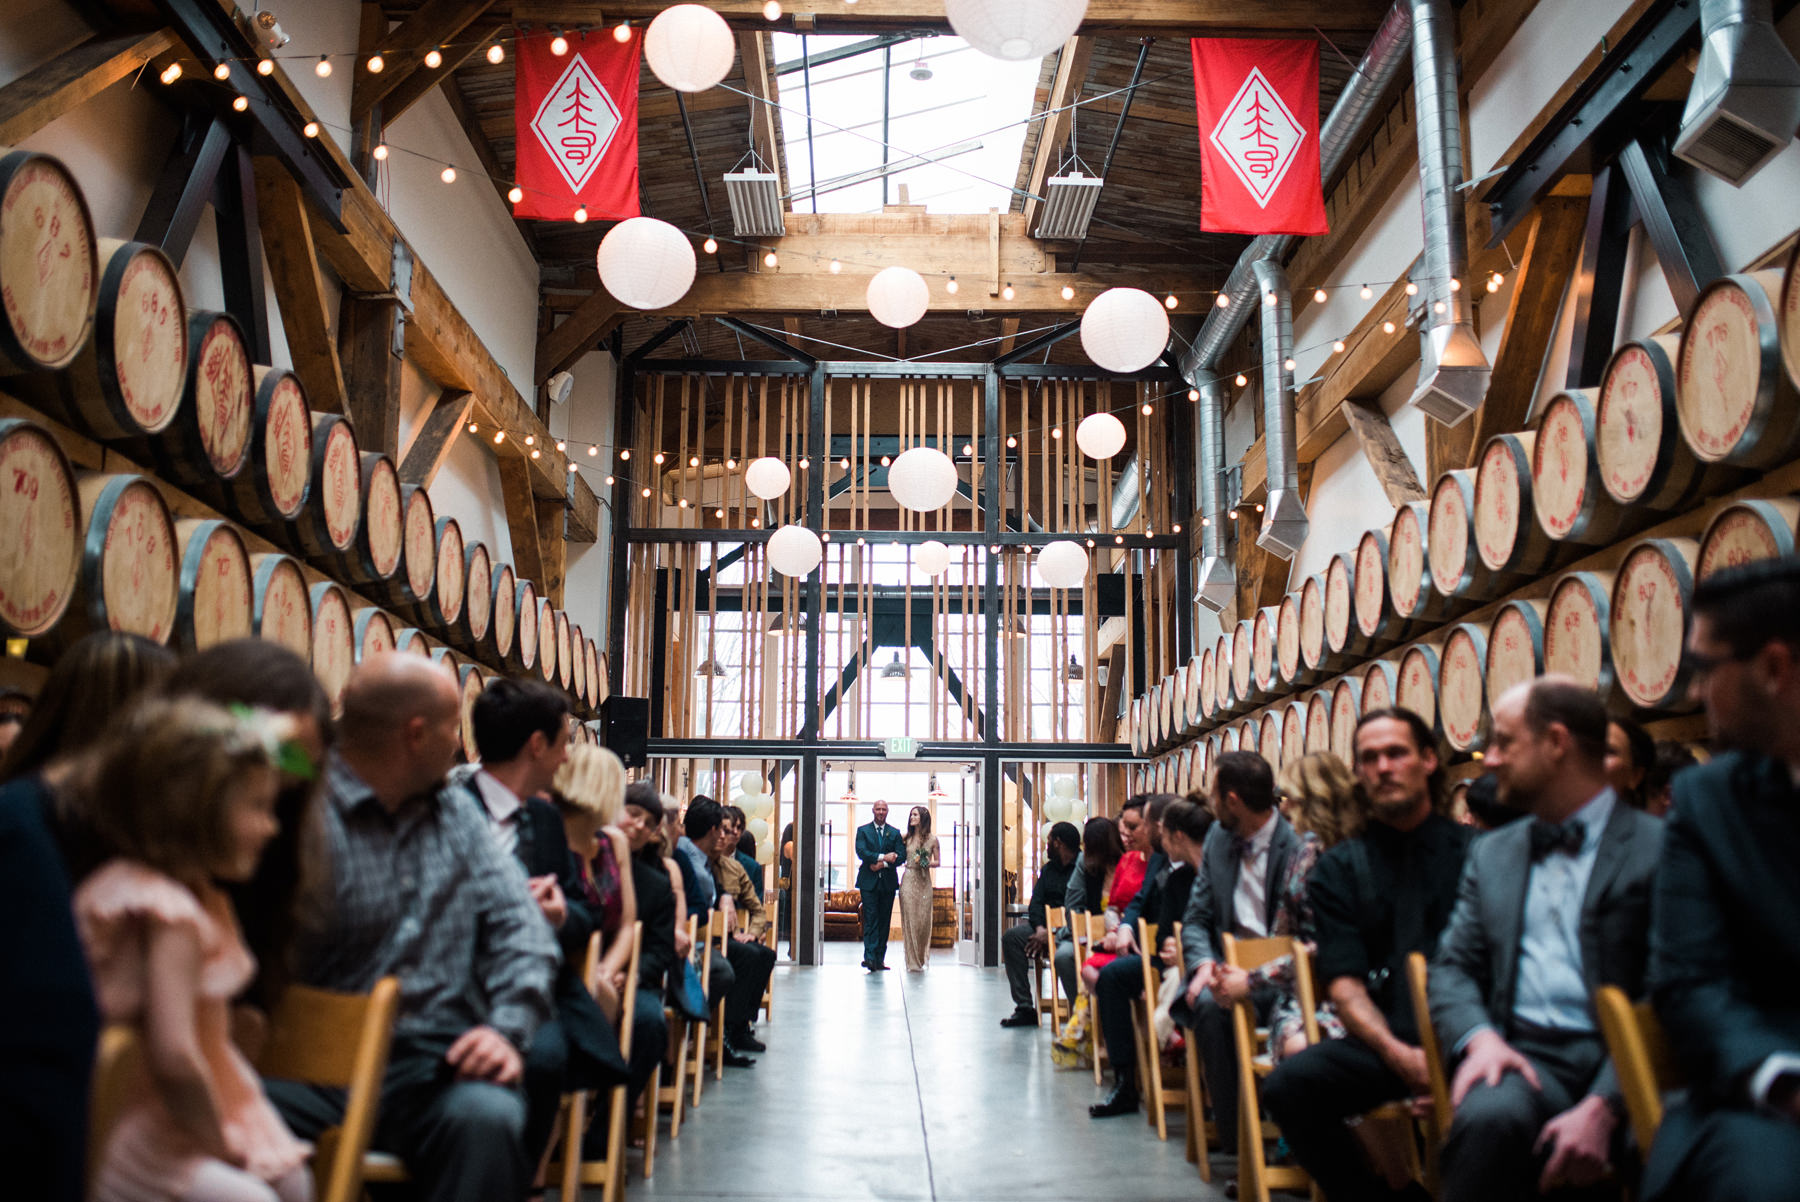 036-wedding-ceremony-among-whiskey-barrels-at-westland-distillery.jpg